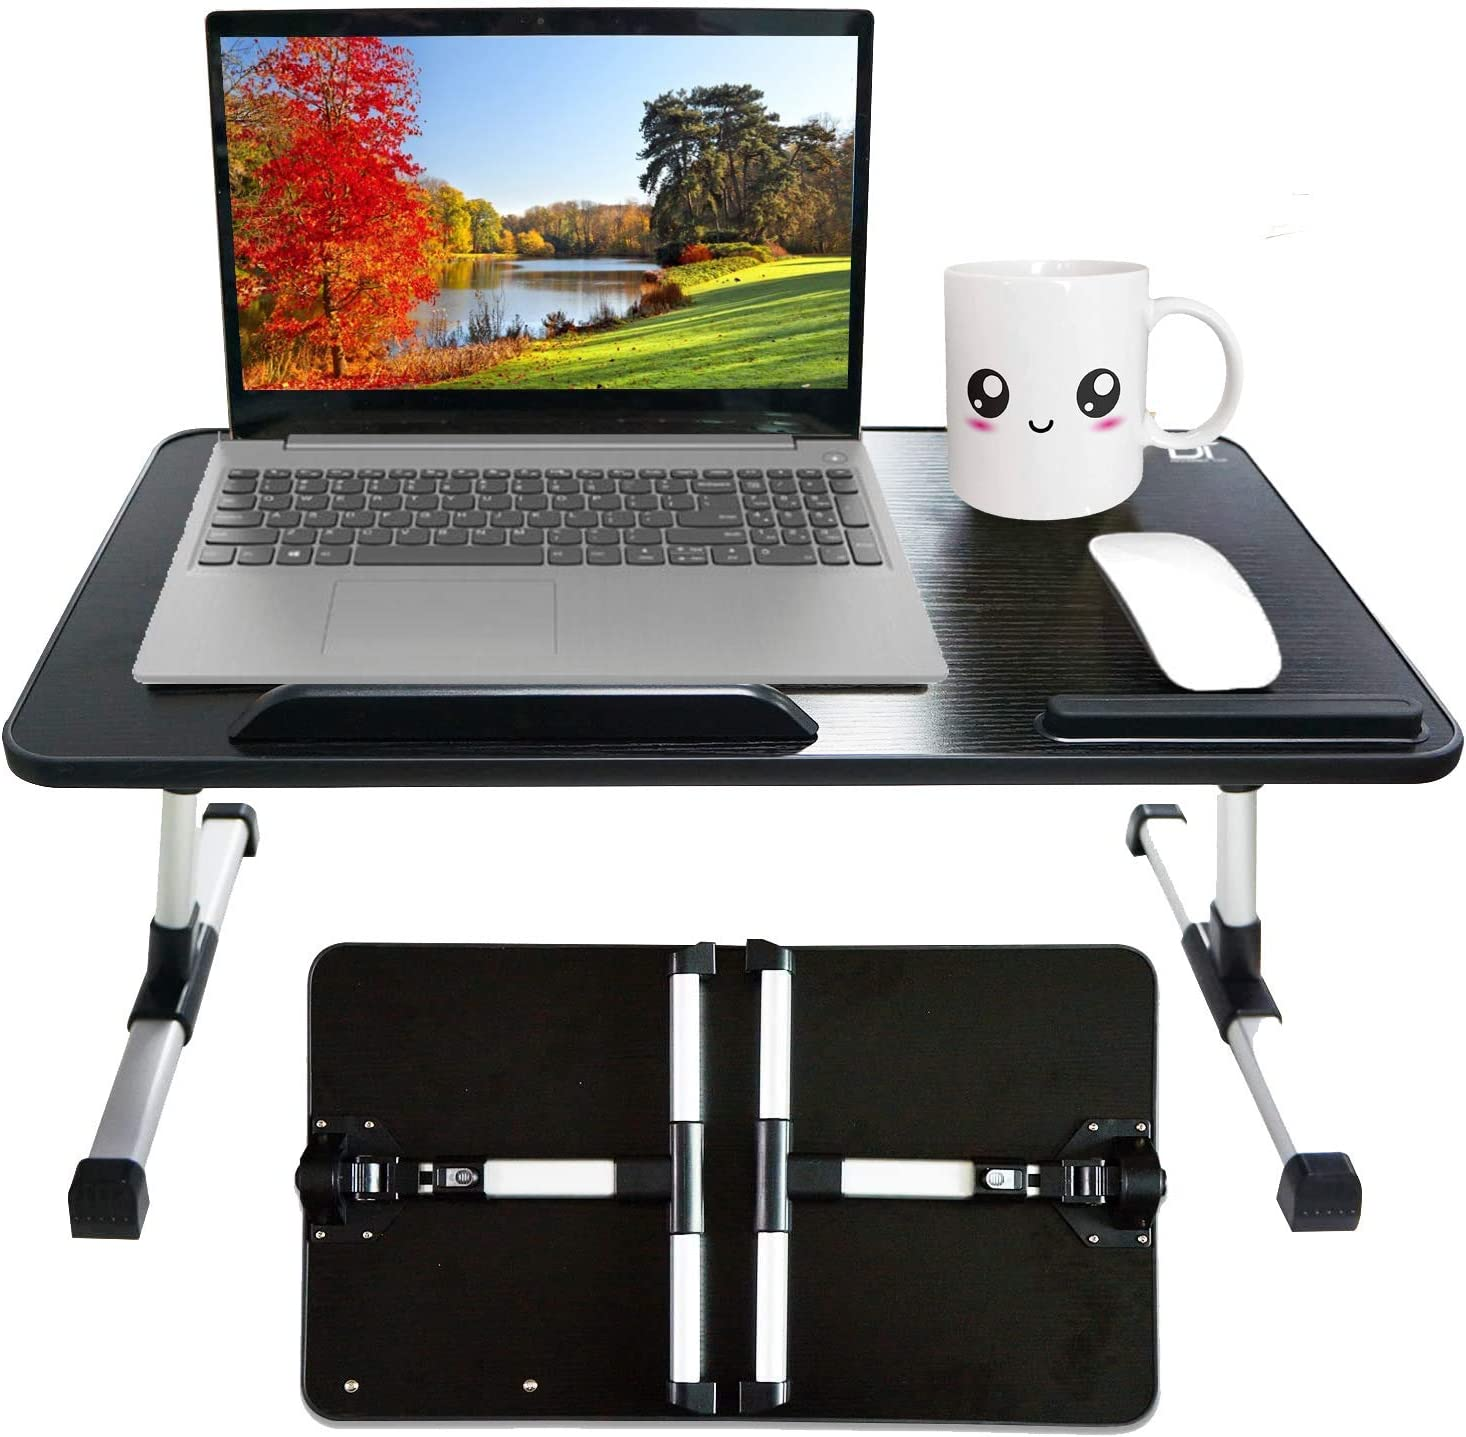 Bed Desk for Laptop and Writing - Height Adjustable Computer Laptop Stand for Reading, Writing, Home Office Working and Gaming on Sofa Couch Floor - Portable Lap Tables with Foldable Legs for Eating